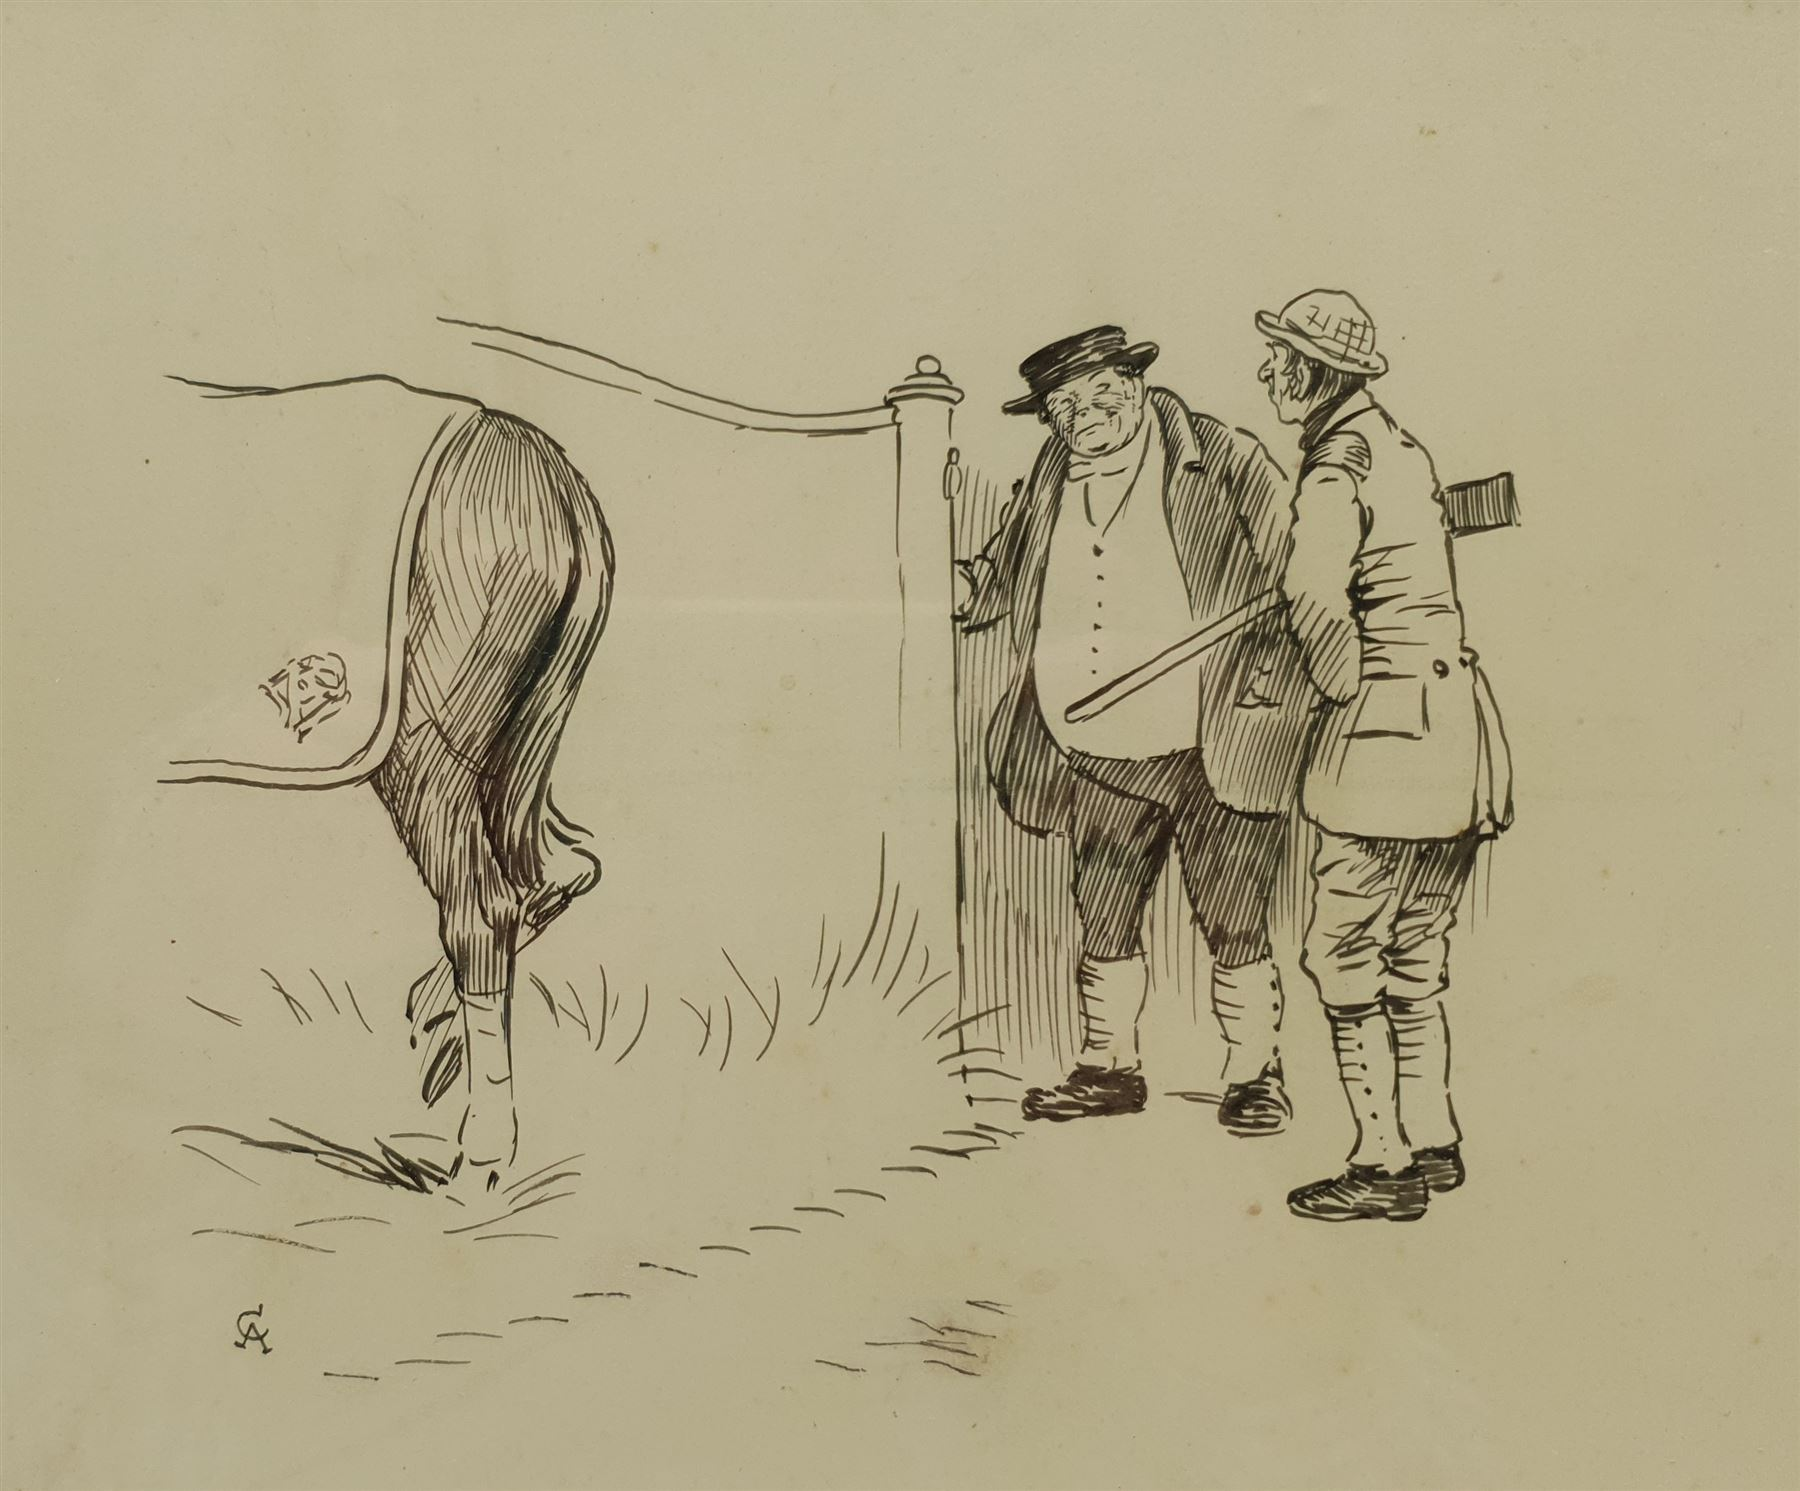 Cecil Aldin (British 1870-1935): 'We're Expectin' an Old Gent from Handley Cross'